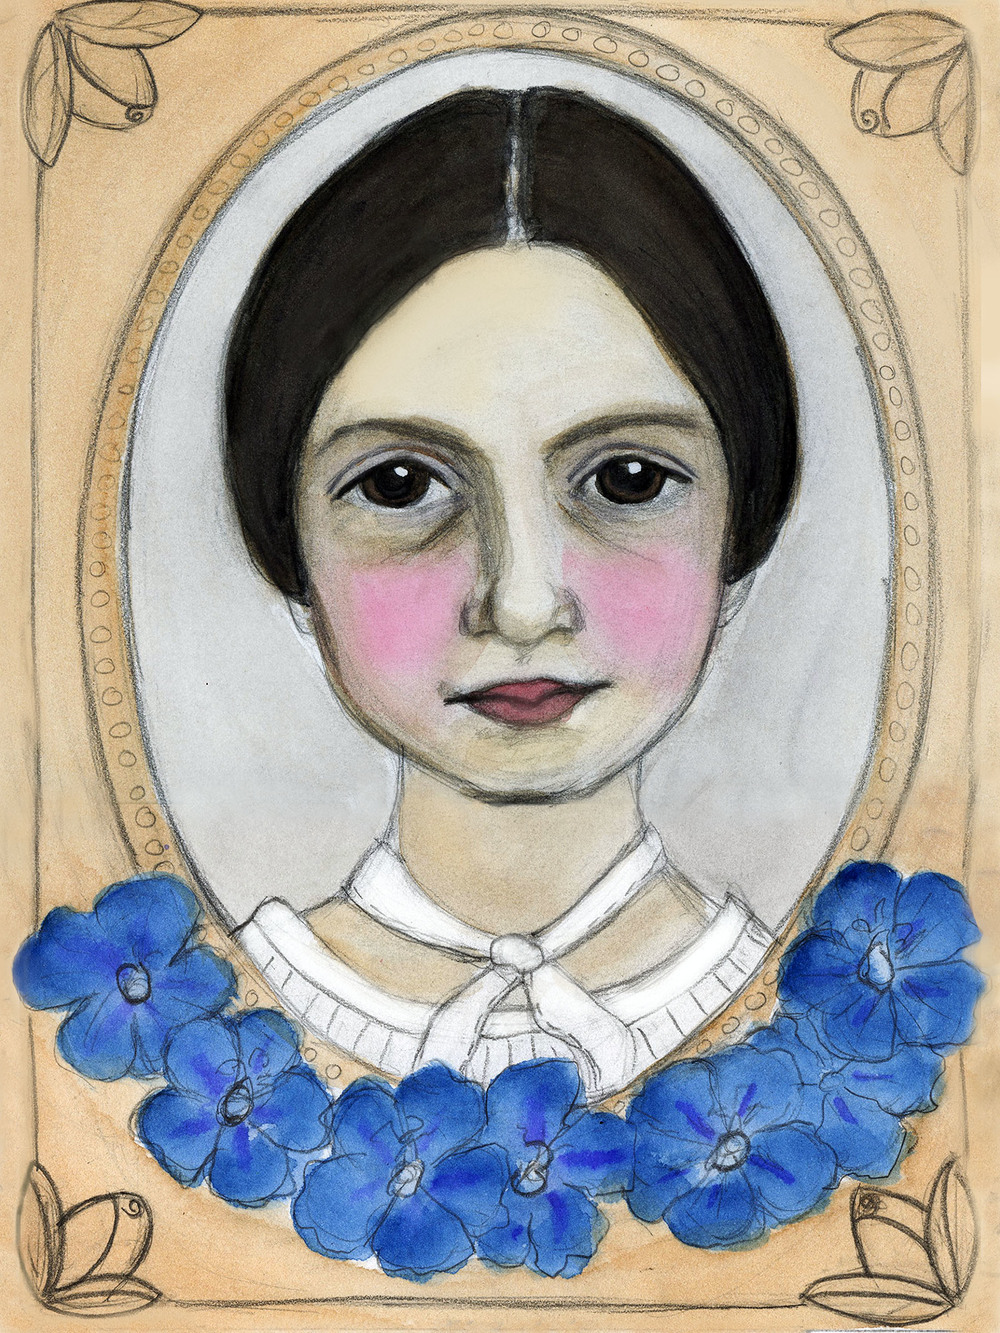 Emily Dickinson and the Geranium Blues